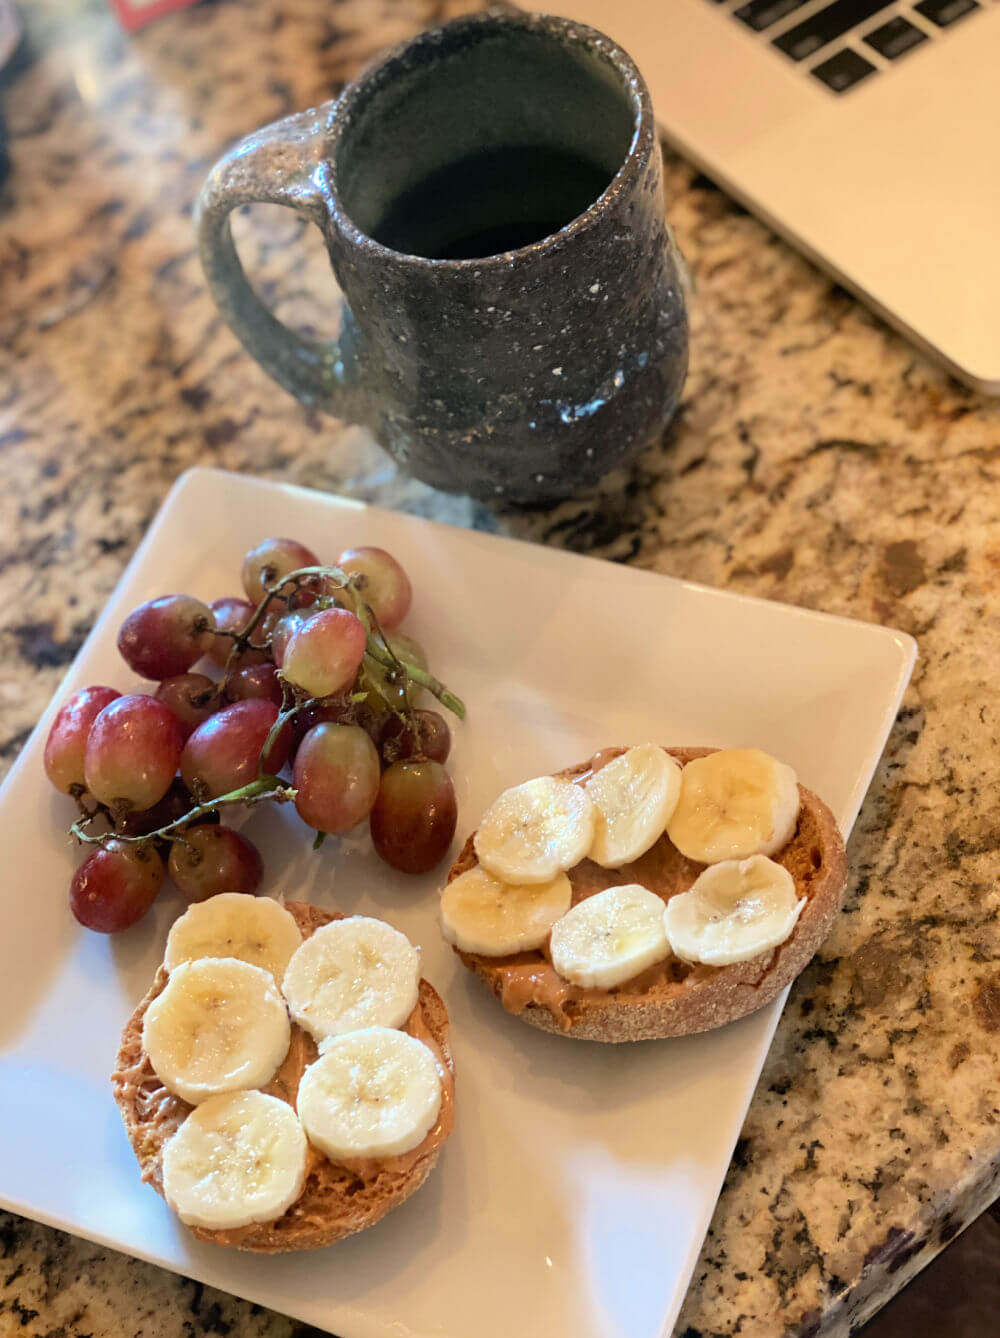 English muffin with peanut butter and banana